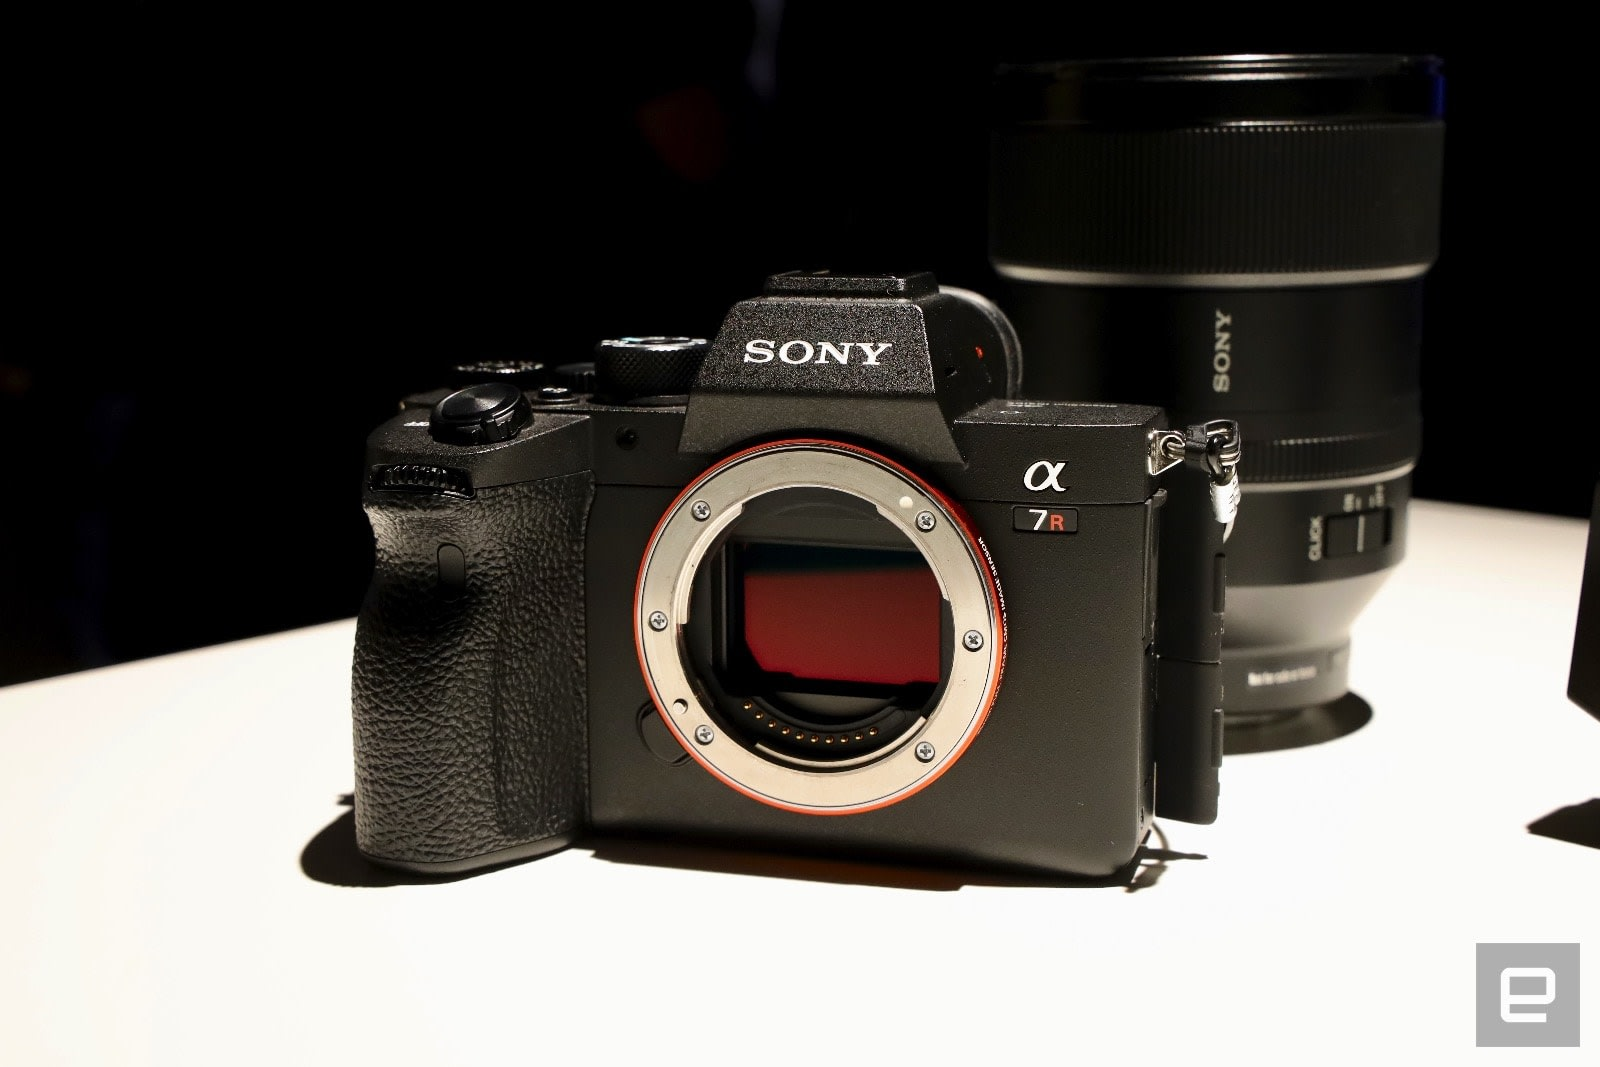 A closer look at Sony's A7R IV full-frame, 61-megapixel mirrorless